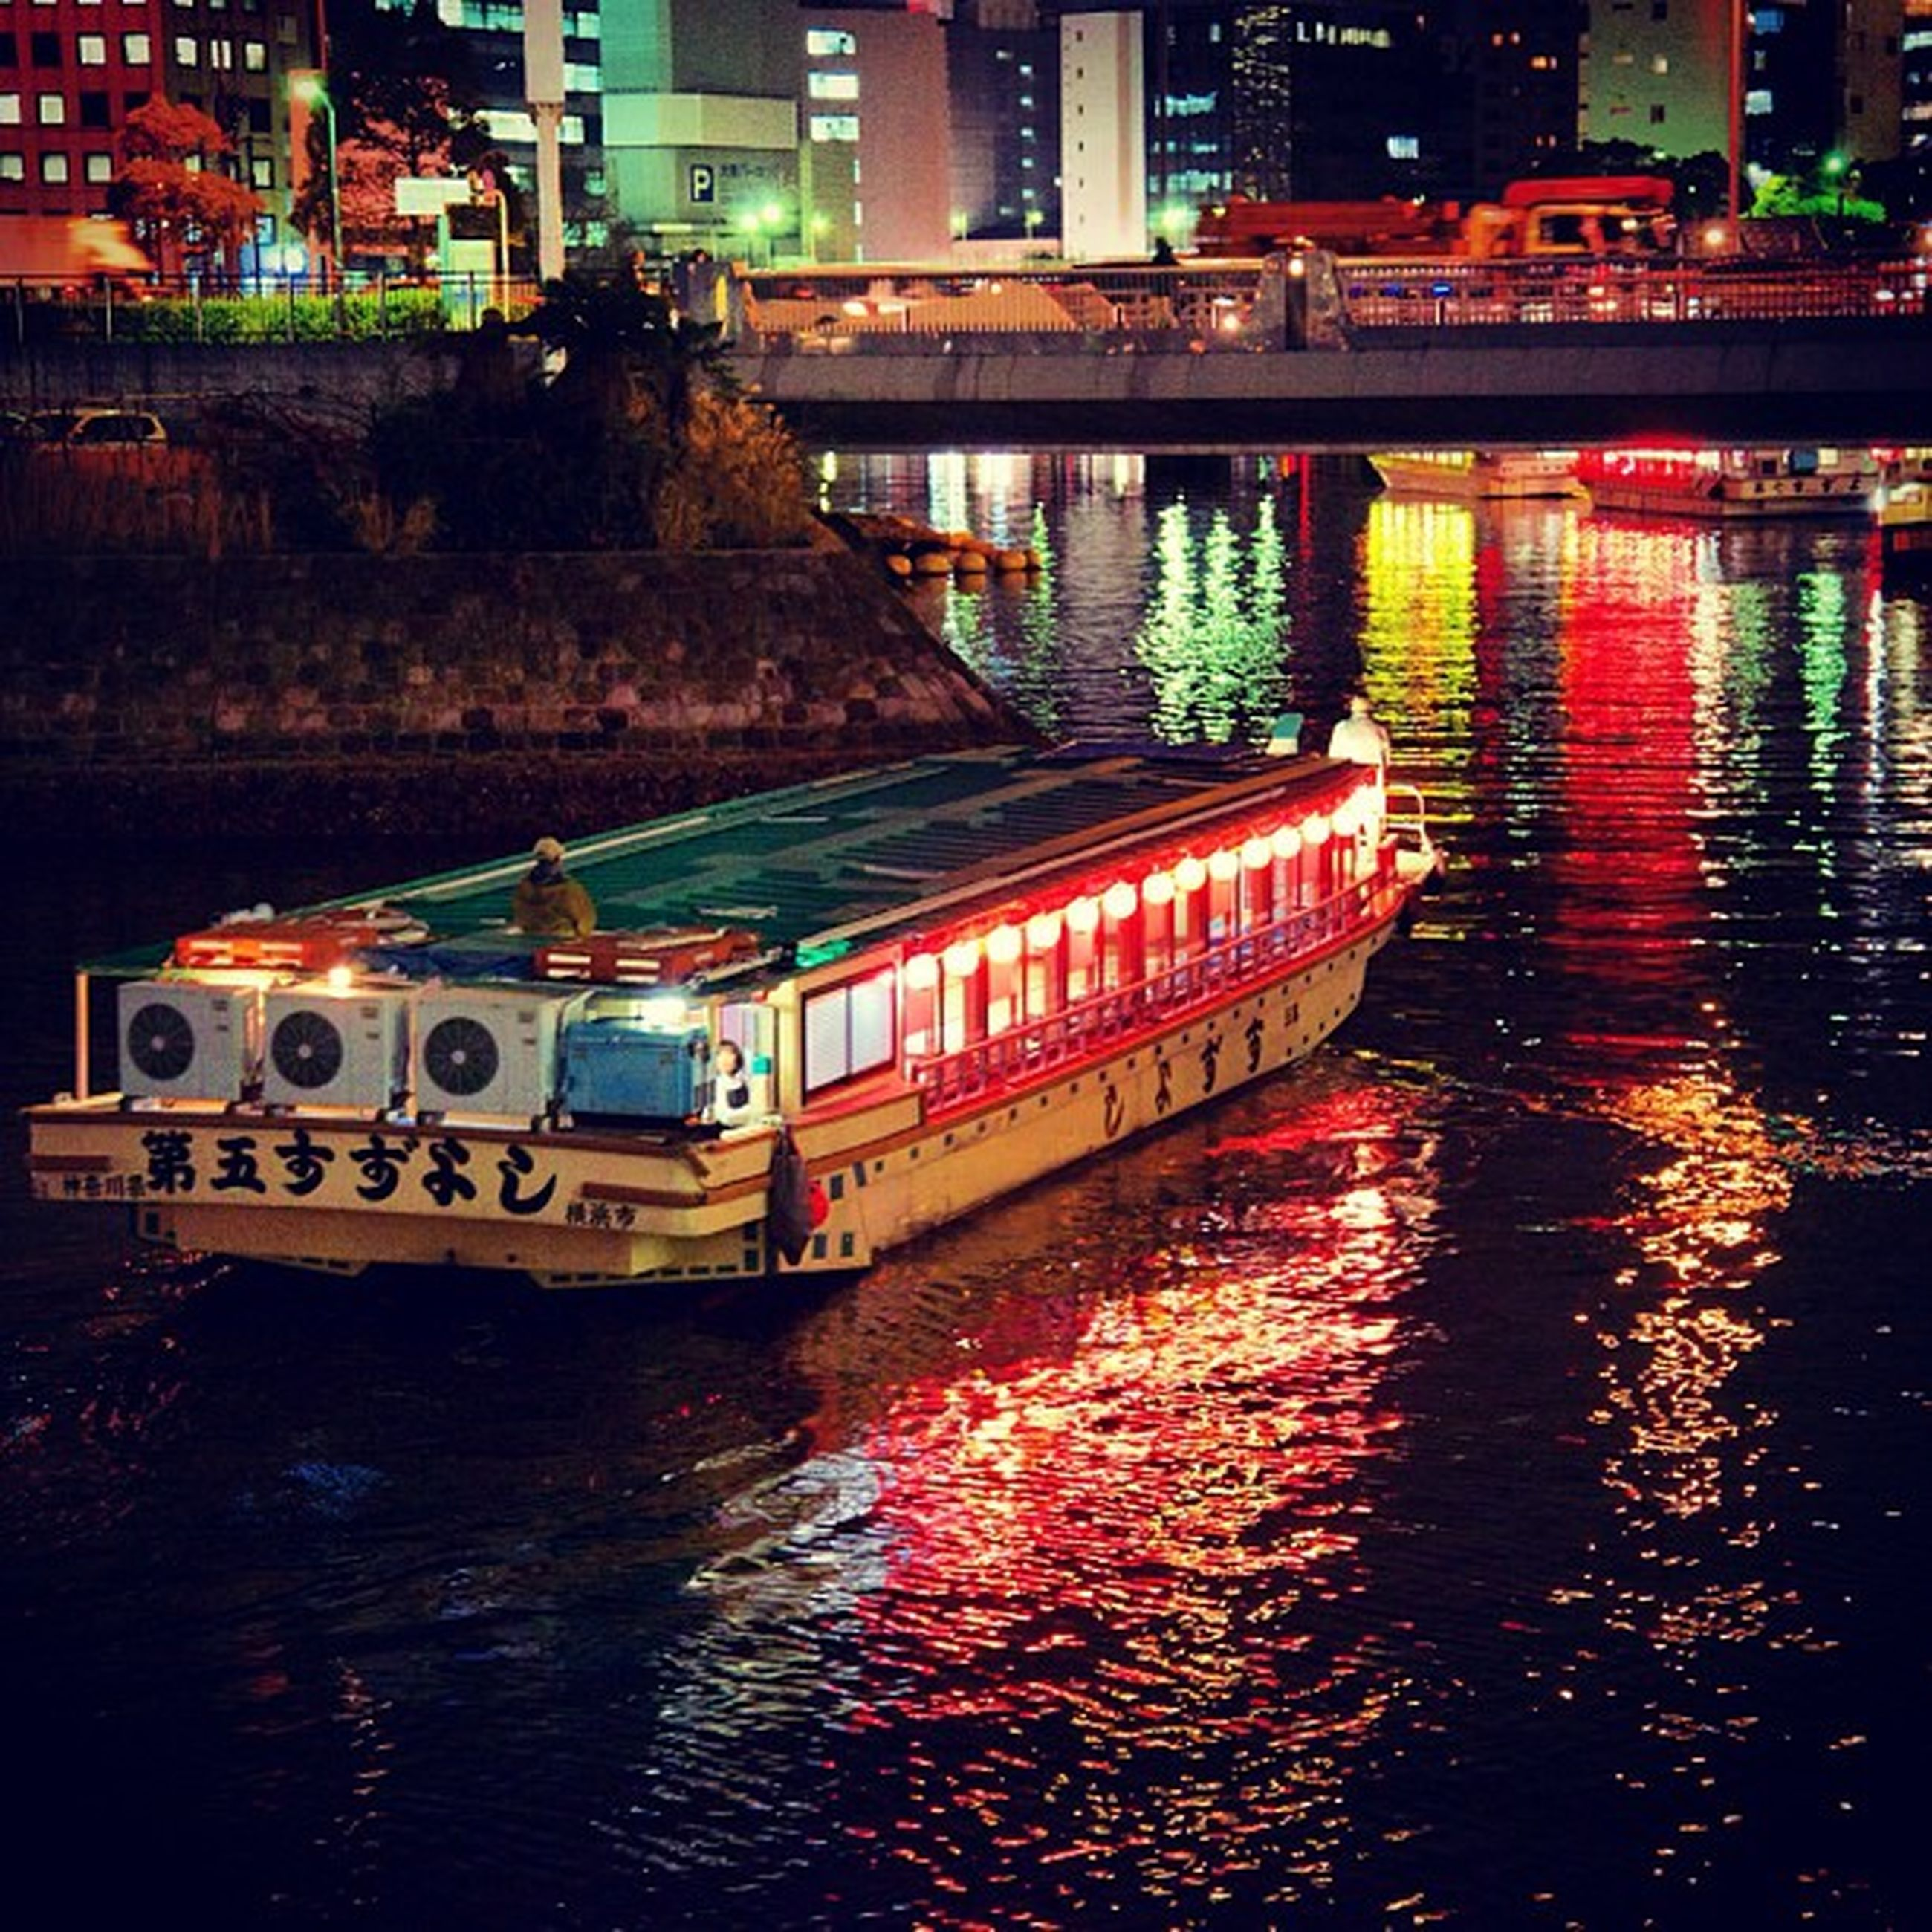 architecture, built structure, water, building exterior, transportation, mode of transport, waterfront, city, river, nautical vessel, high angle view, bridge - man made structure, boat, illuminated, night, reflection, canal, travel, connection, city life